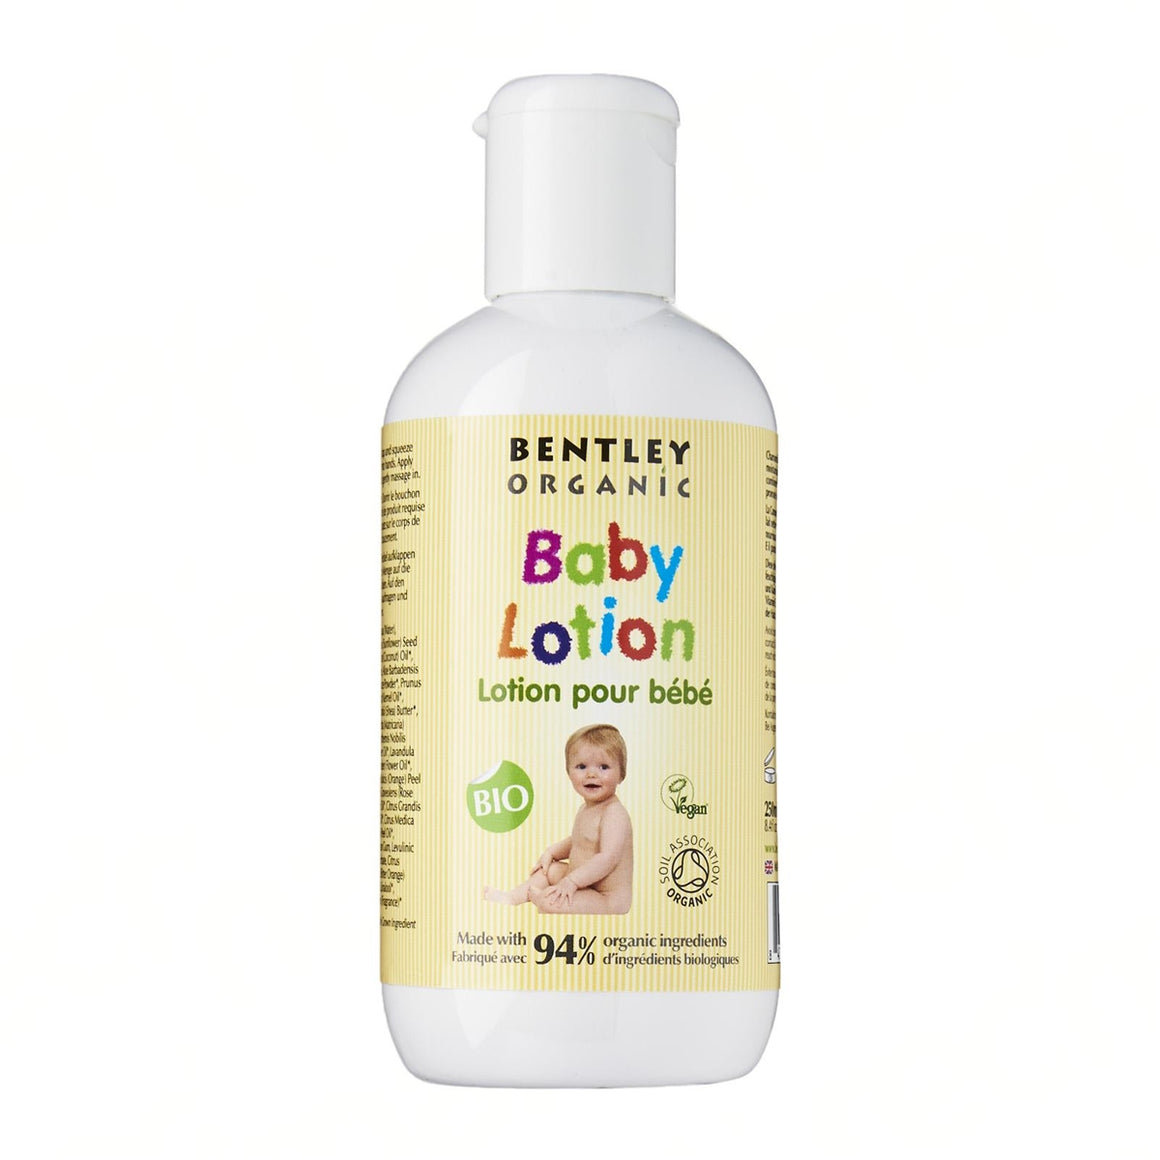 Bentley Organic : Baby Lotion